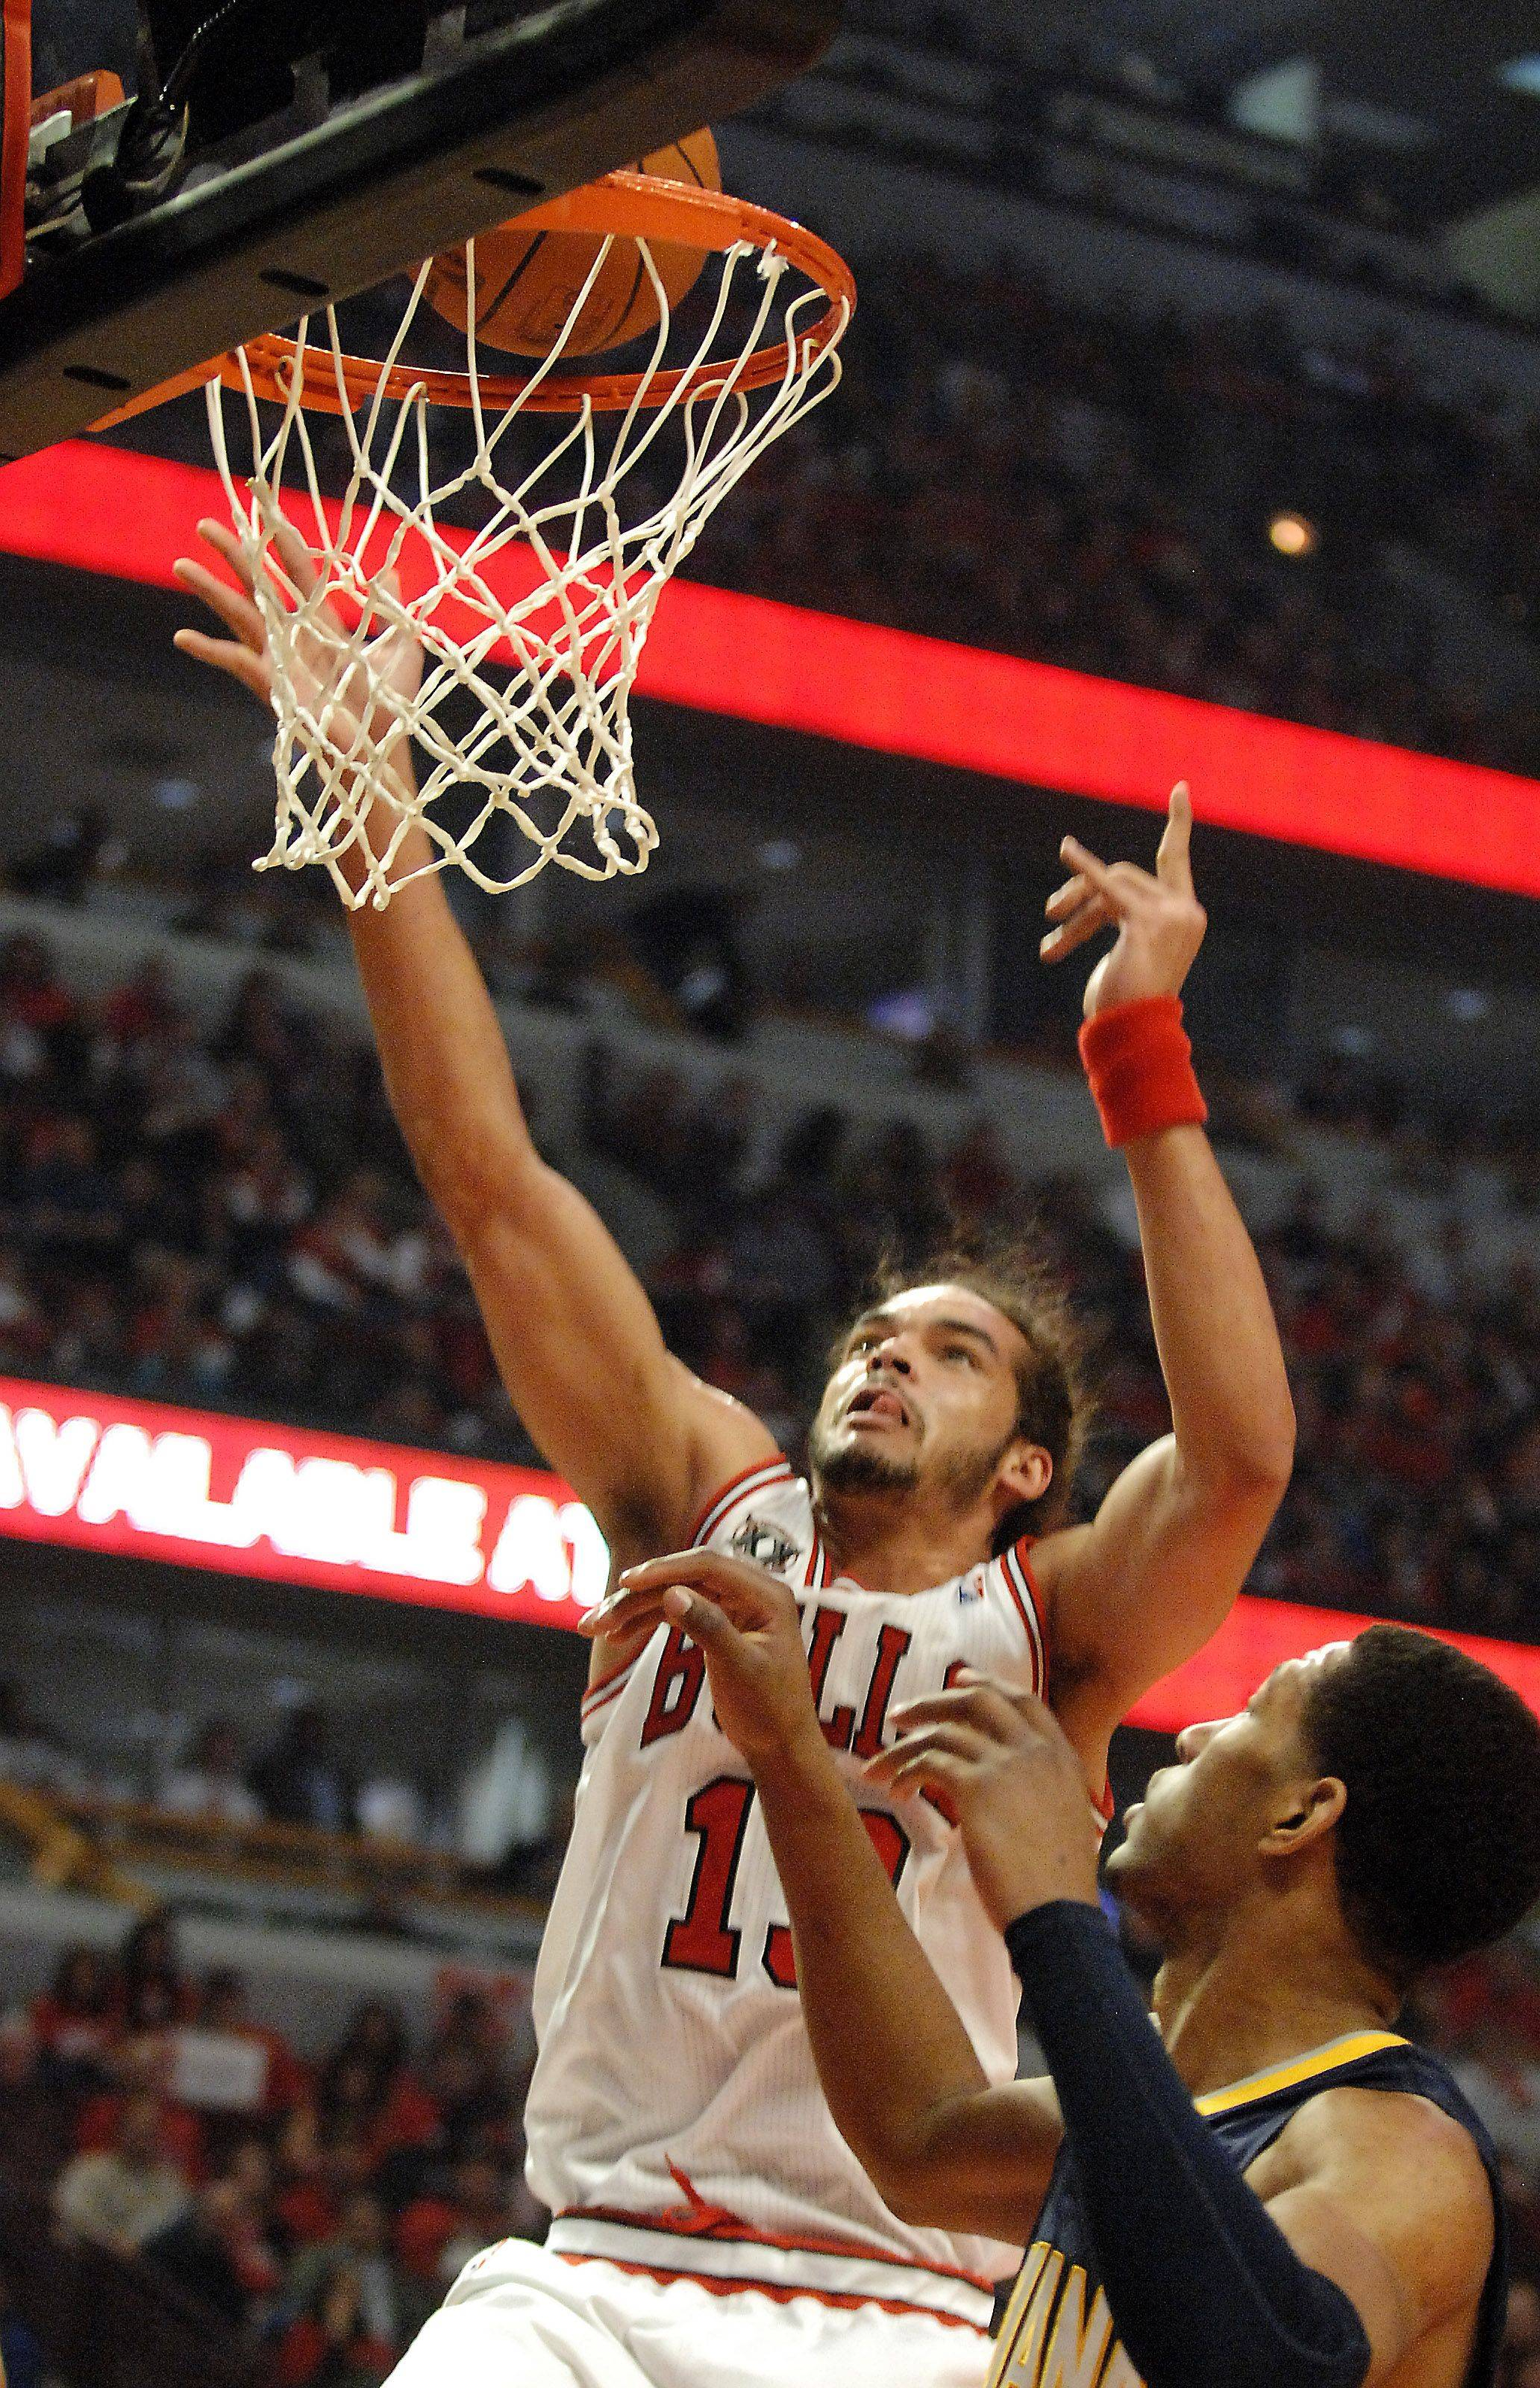 Chicago Bulls center Joakim Noah (13) tips in a basket during Game One of the NBA Eastern Conference Quarterfinals Saturday at the United Center in Chicago.